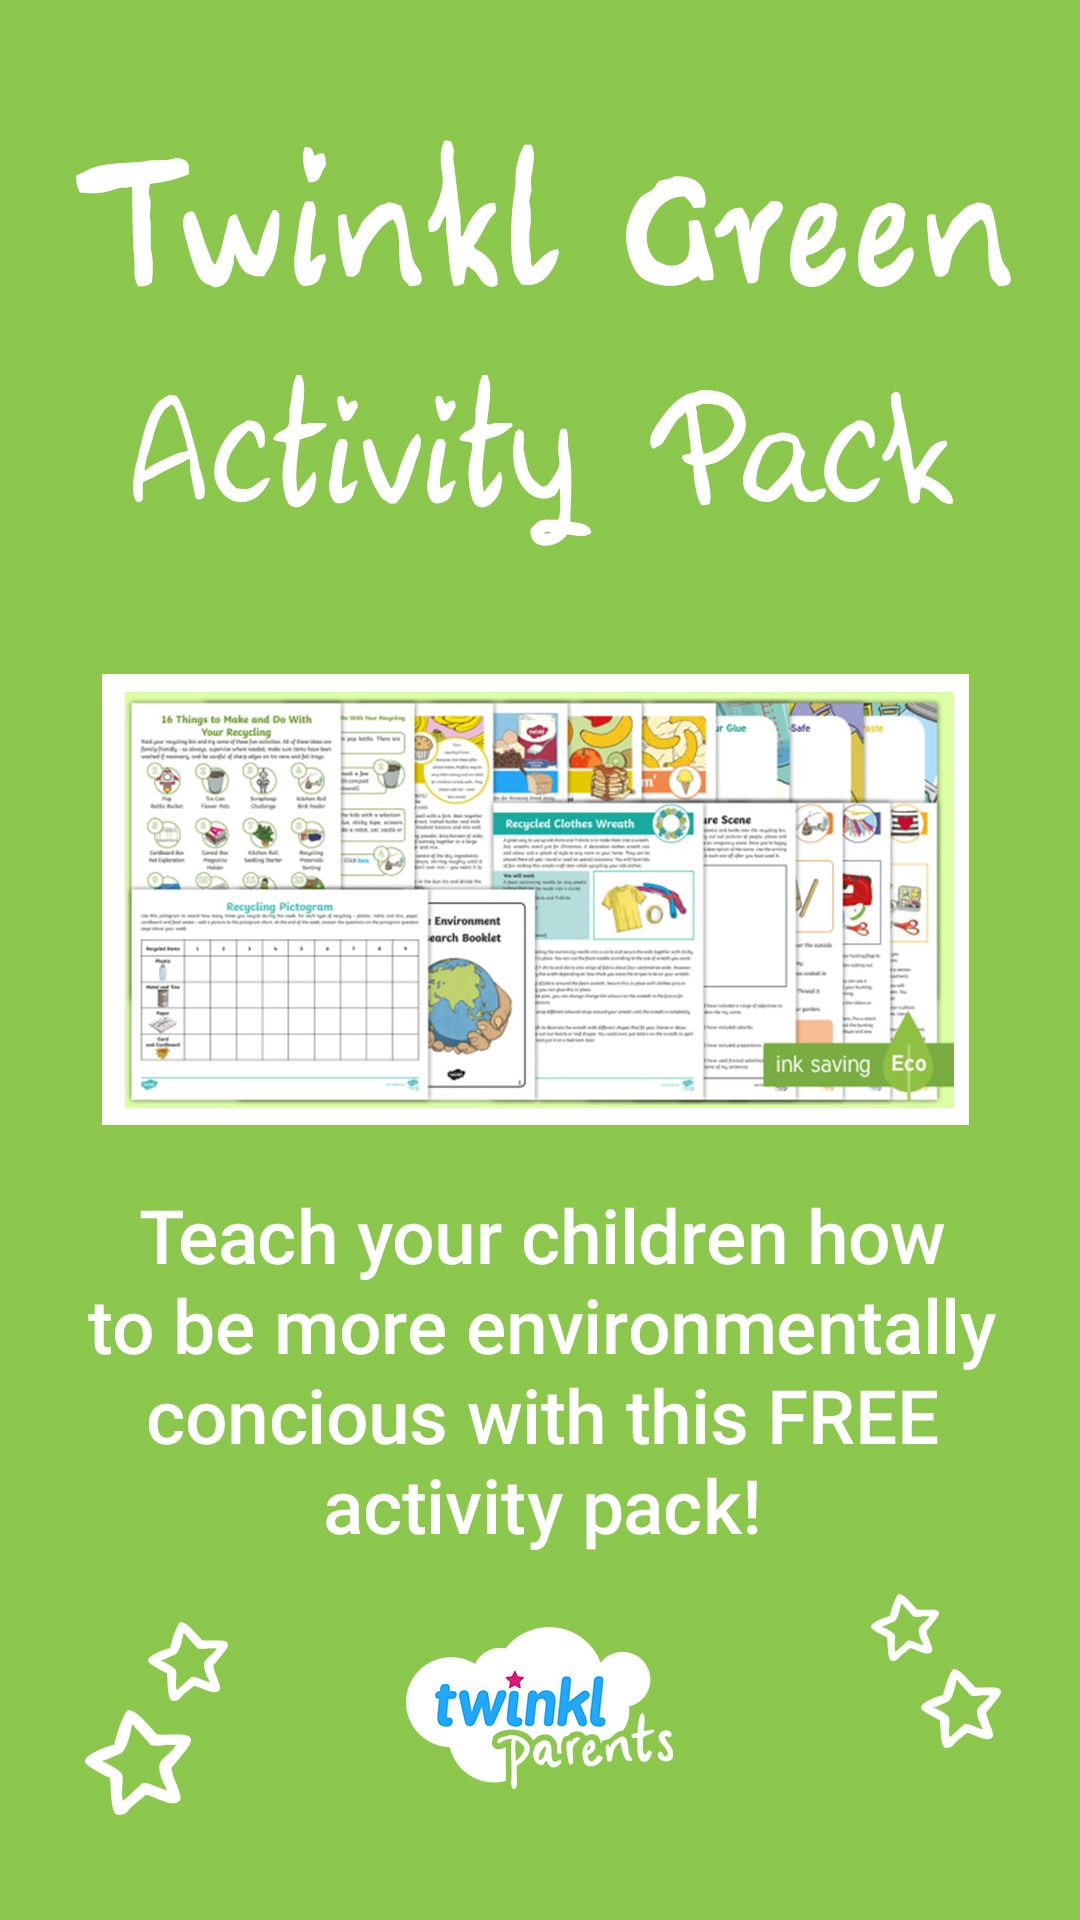 Teach Your Child How To Be More Environmentally Conscious